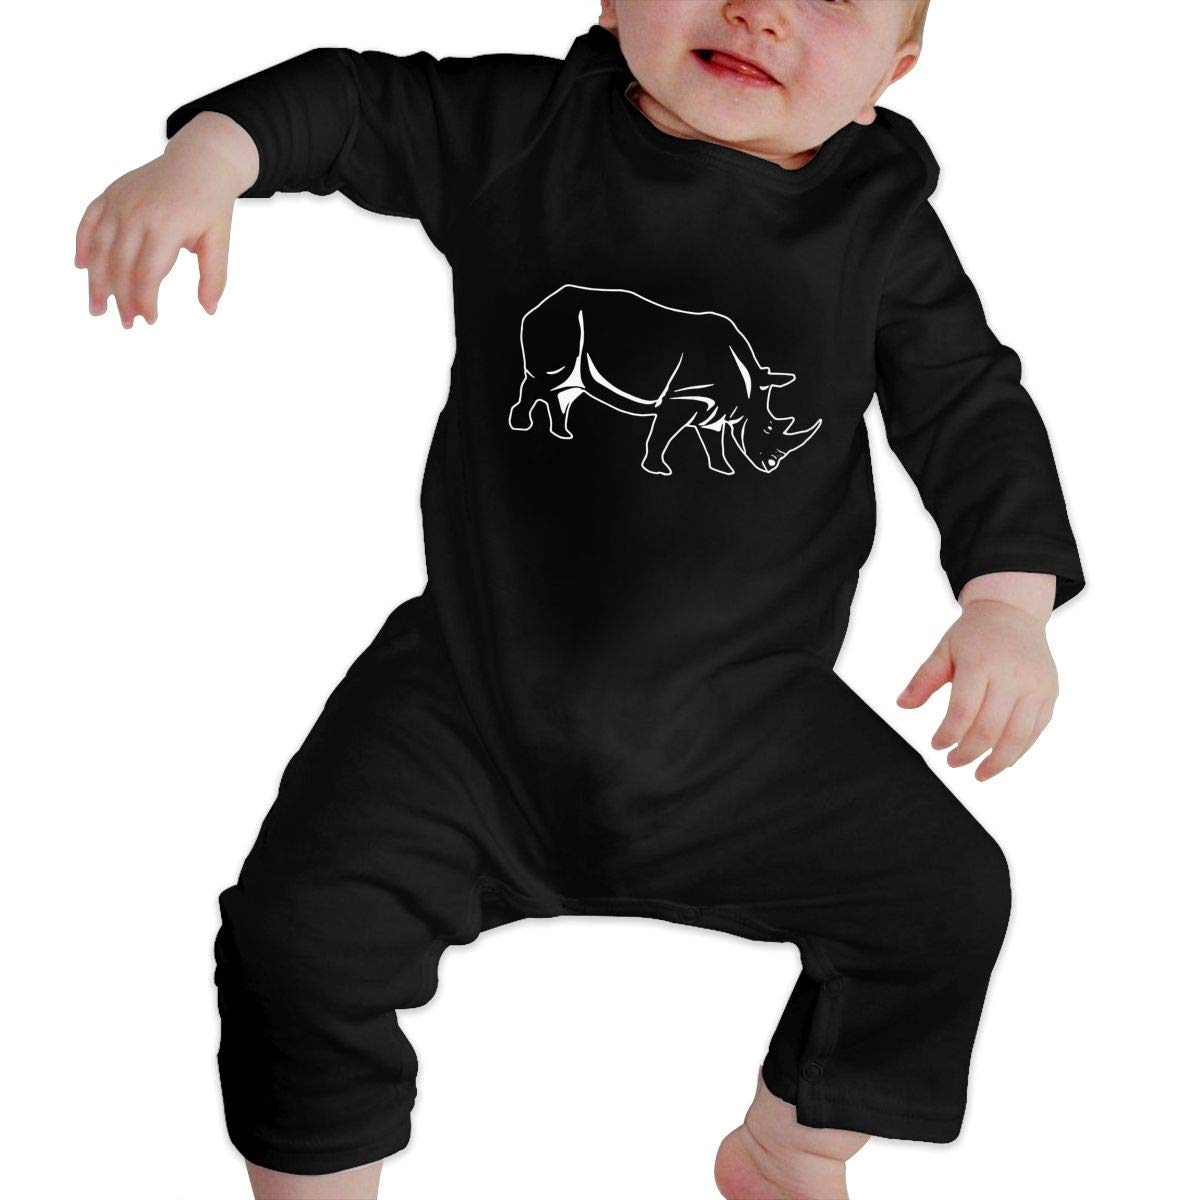 A1BY-5US Baby Infant Toddler Cotton Long Sleeve African Rhino Baby Clothes Funny Printed Romper Clothes